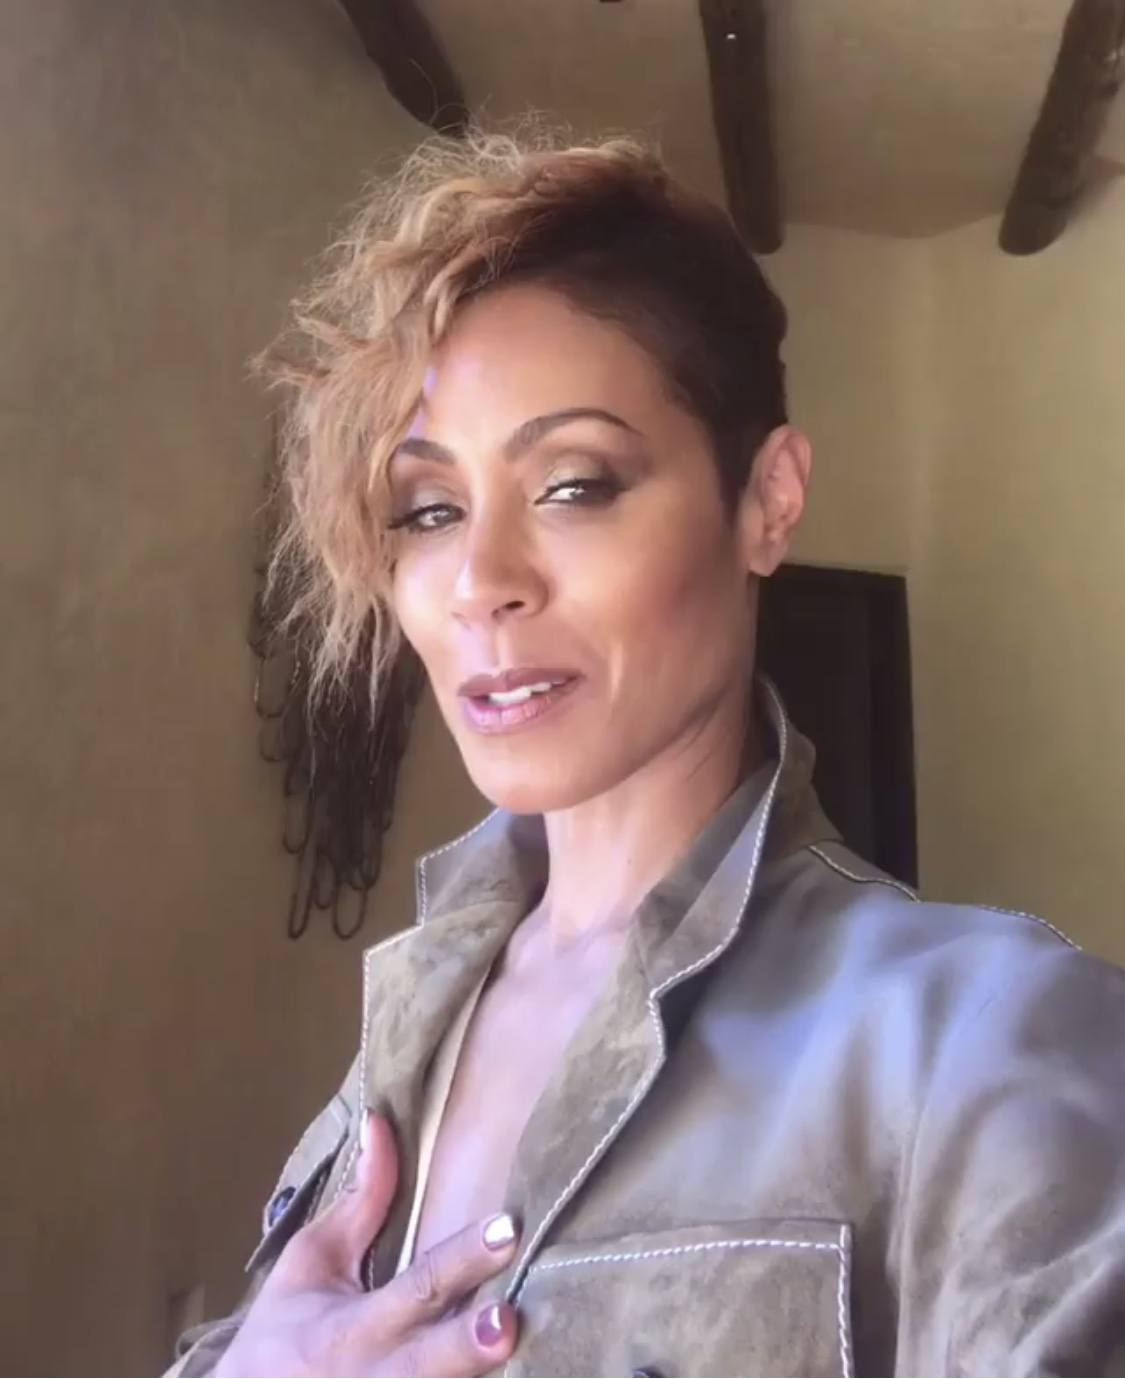 Jada Pinkett Smith Reveals She 'Considered' Suicide 'Often' In The Past